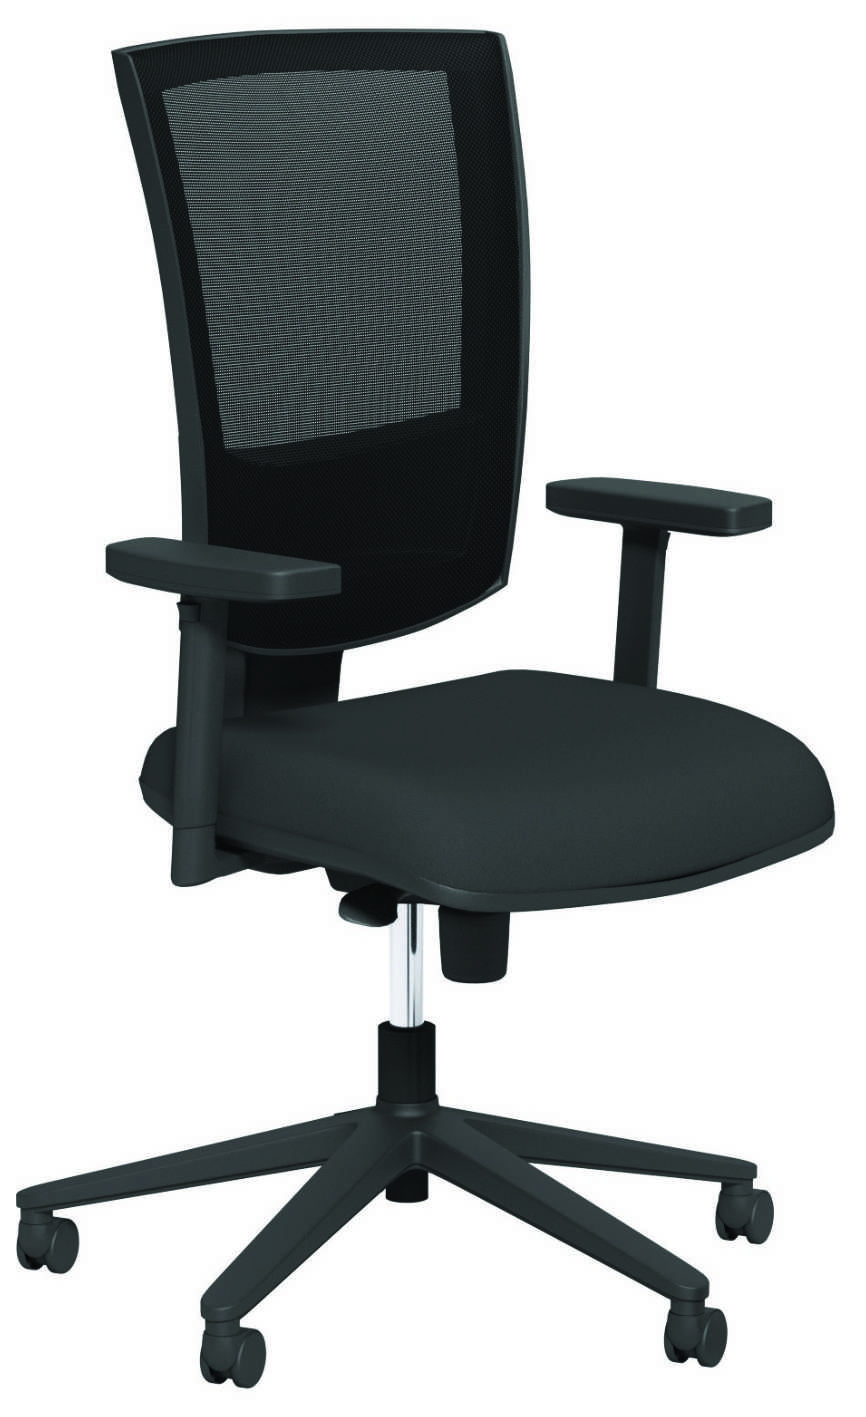 Flash Mesh Operator Seat - Option 1